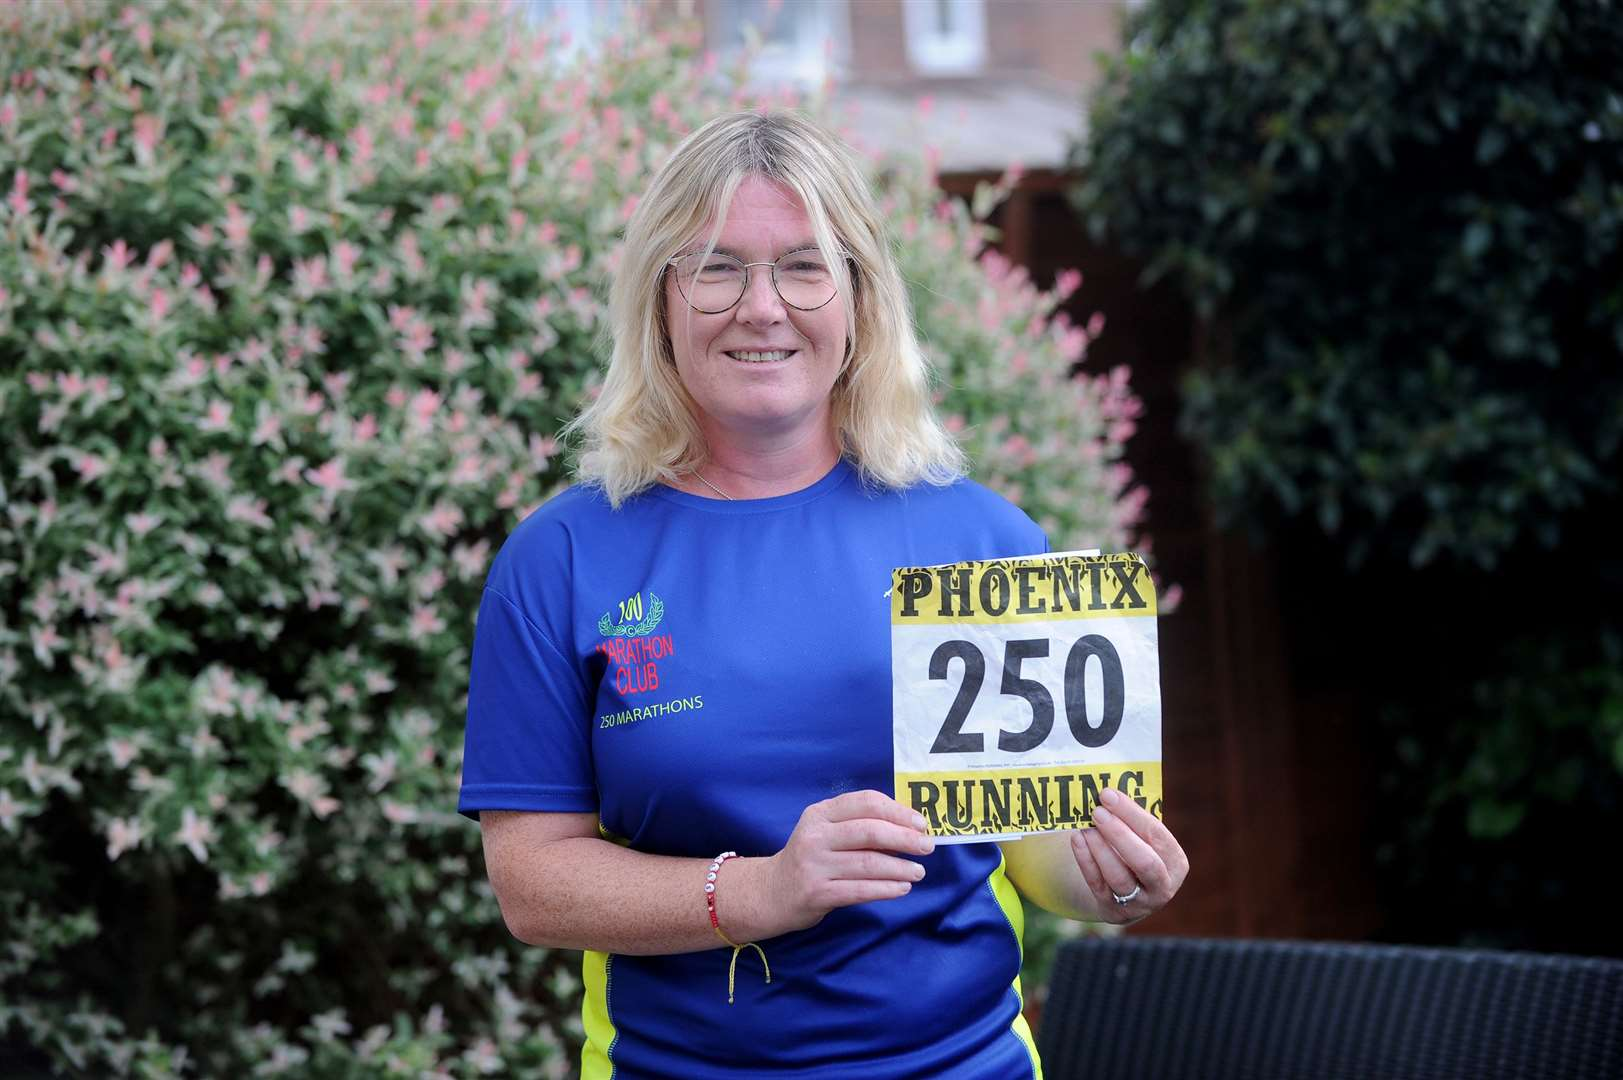 Melanie Sturman with the special number she was given for Saturday's marathon	Picture by Mecha Morton